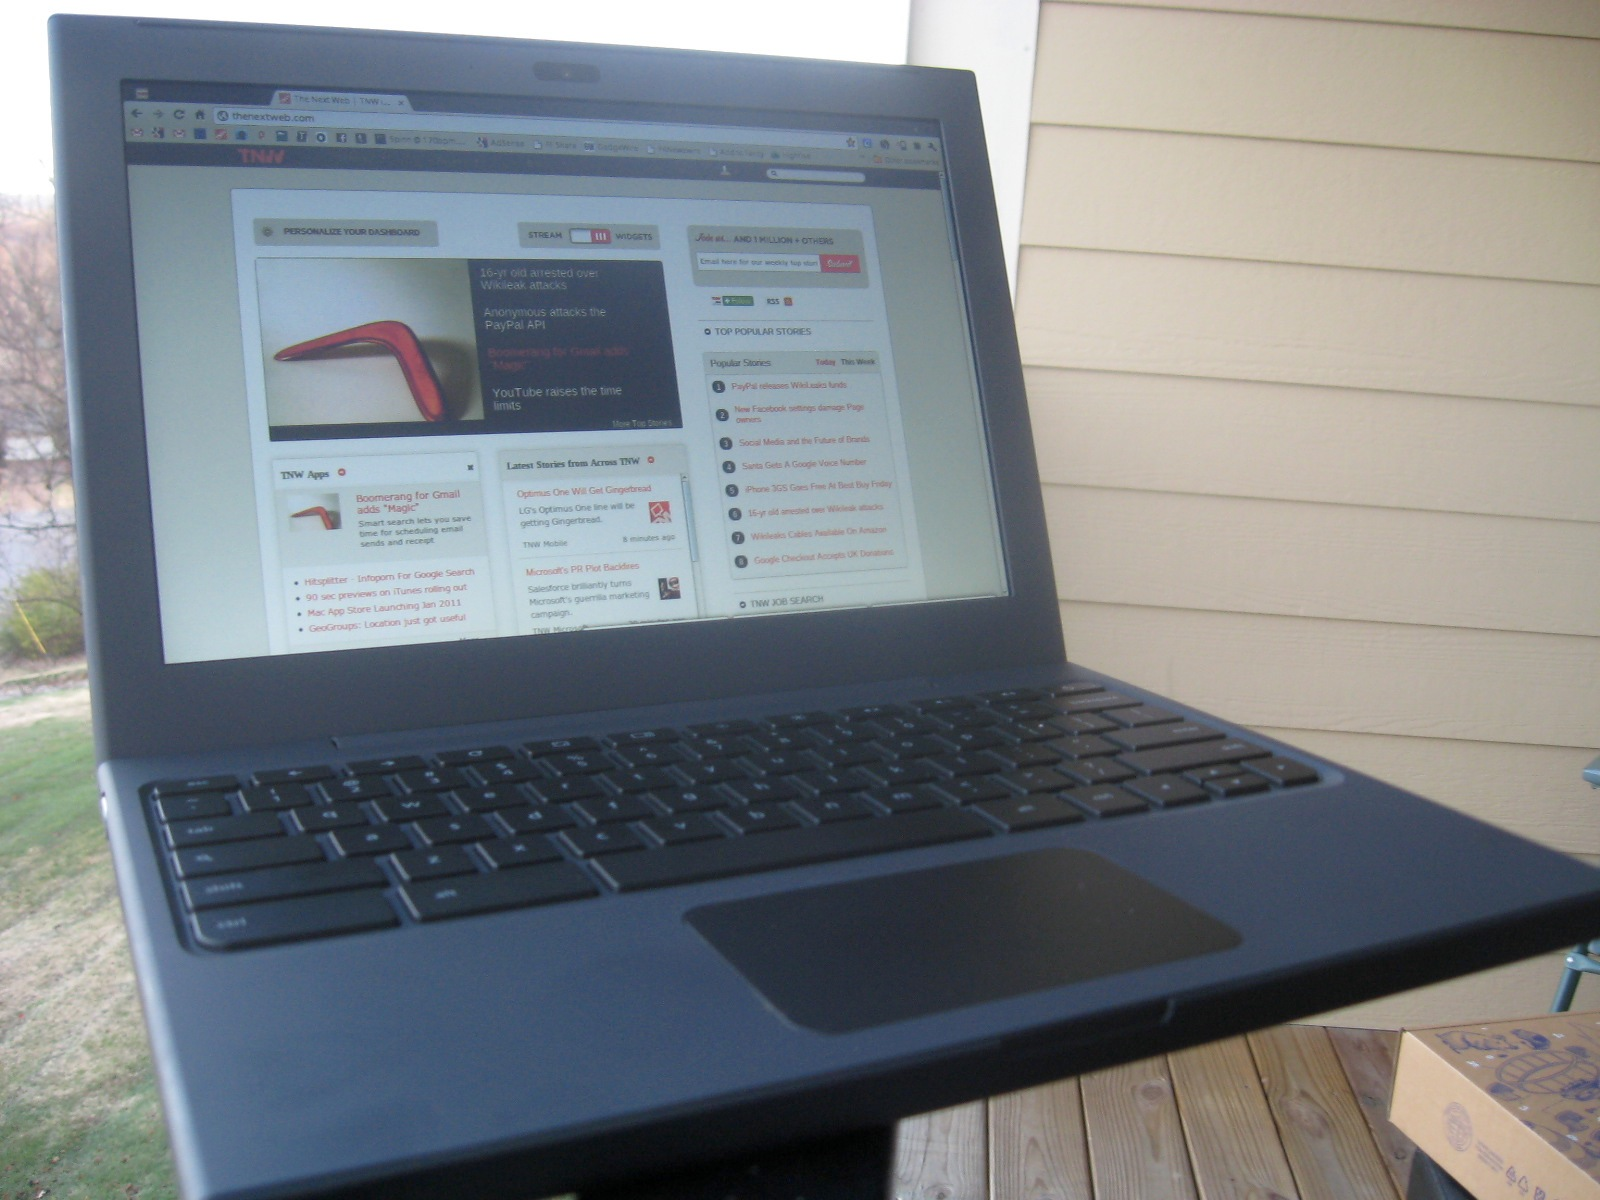 Google's Cr-48 Netbook Review: Is this the dawn of computing's future?